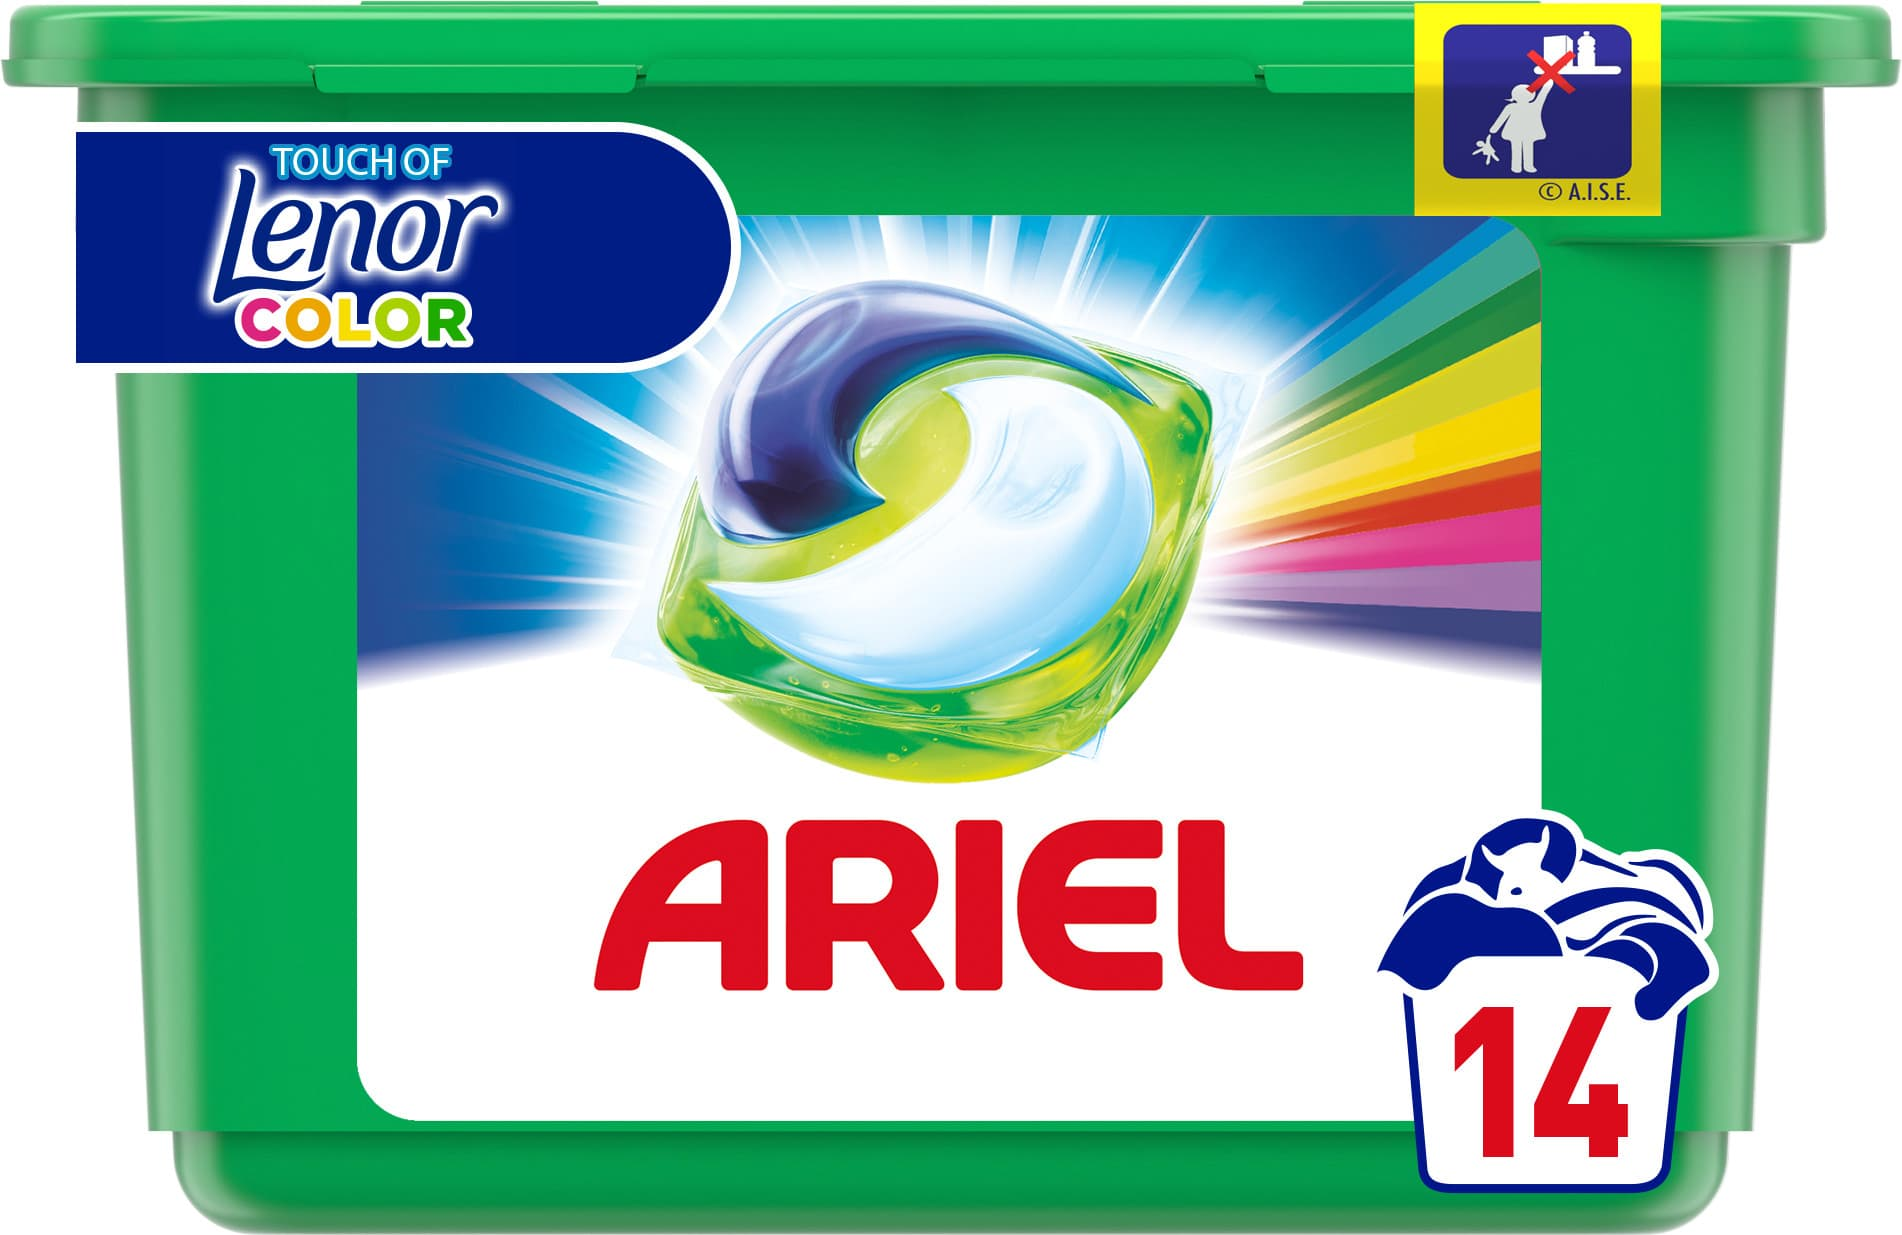 Ariel gelové kapsle Touch of Lenor 14ks